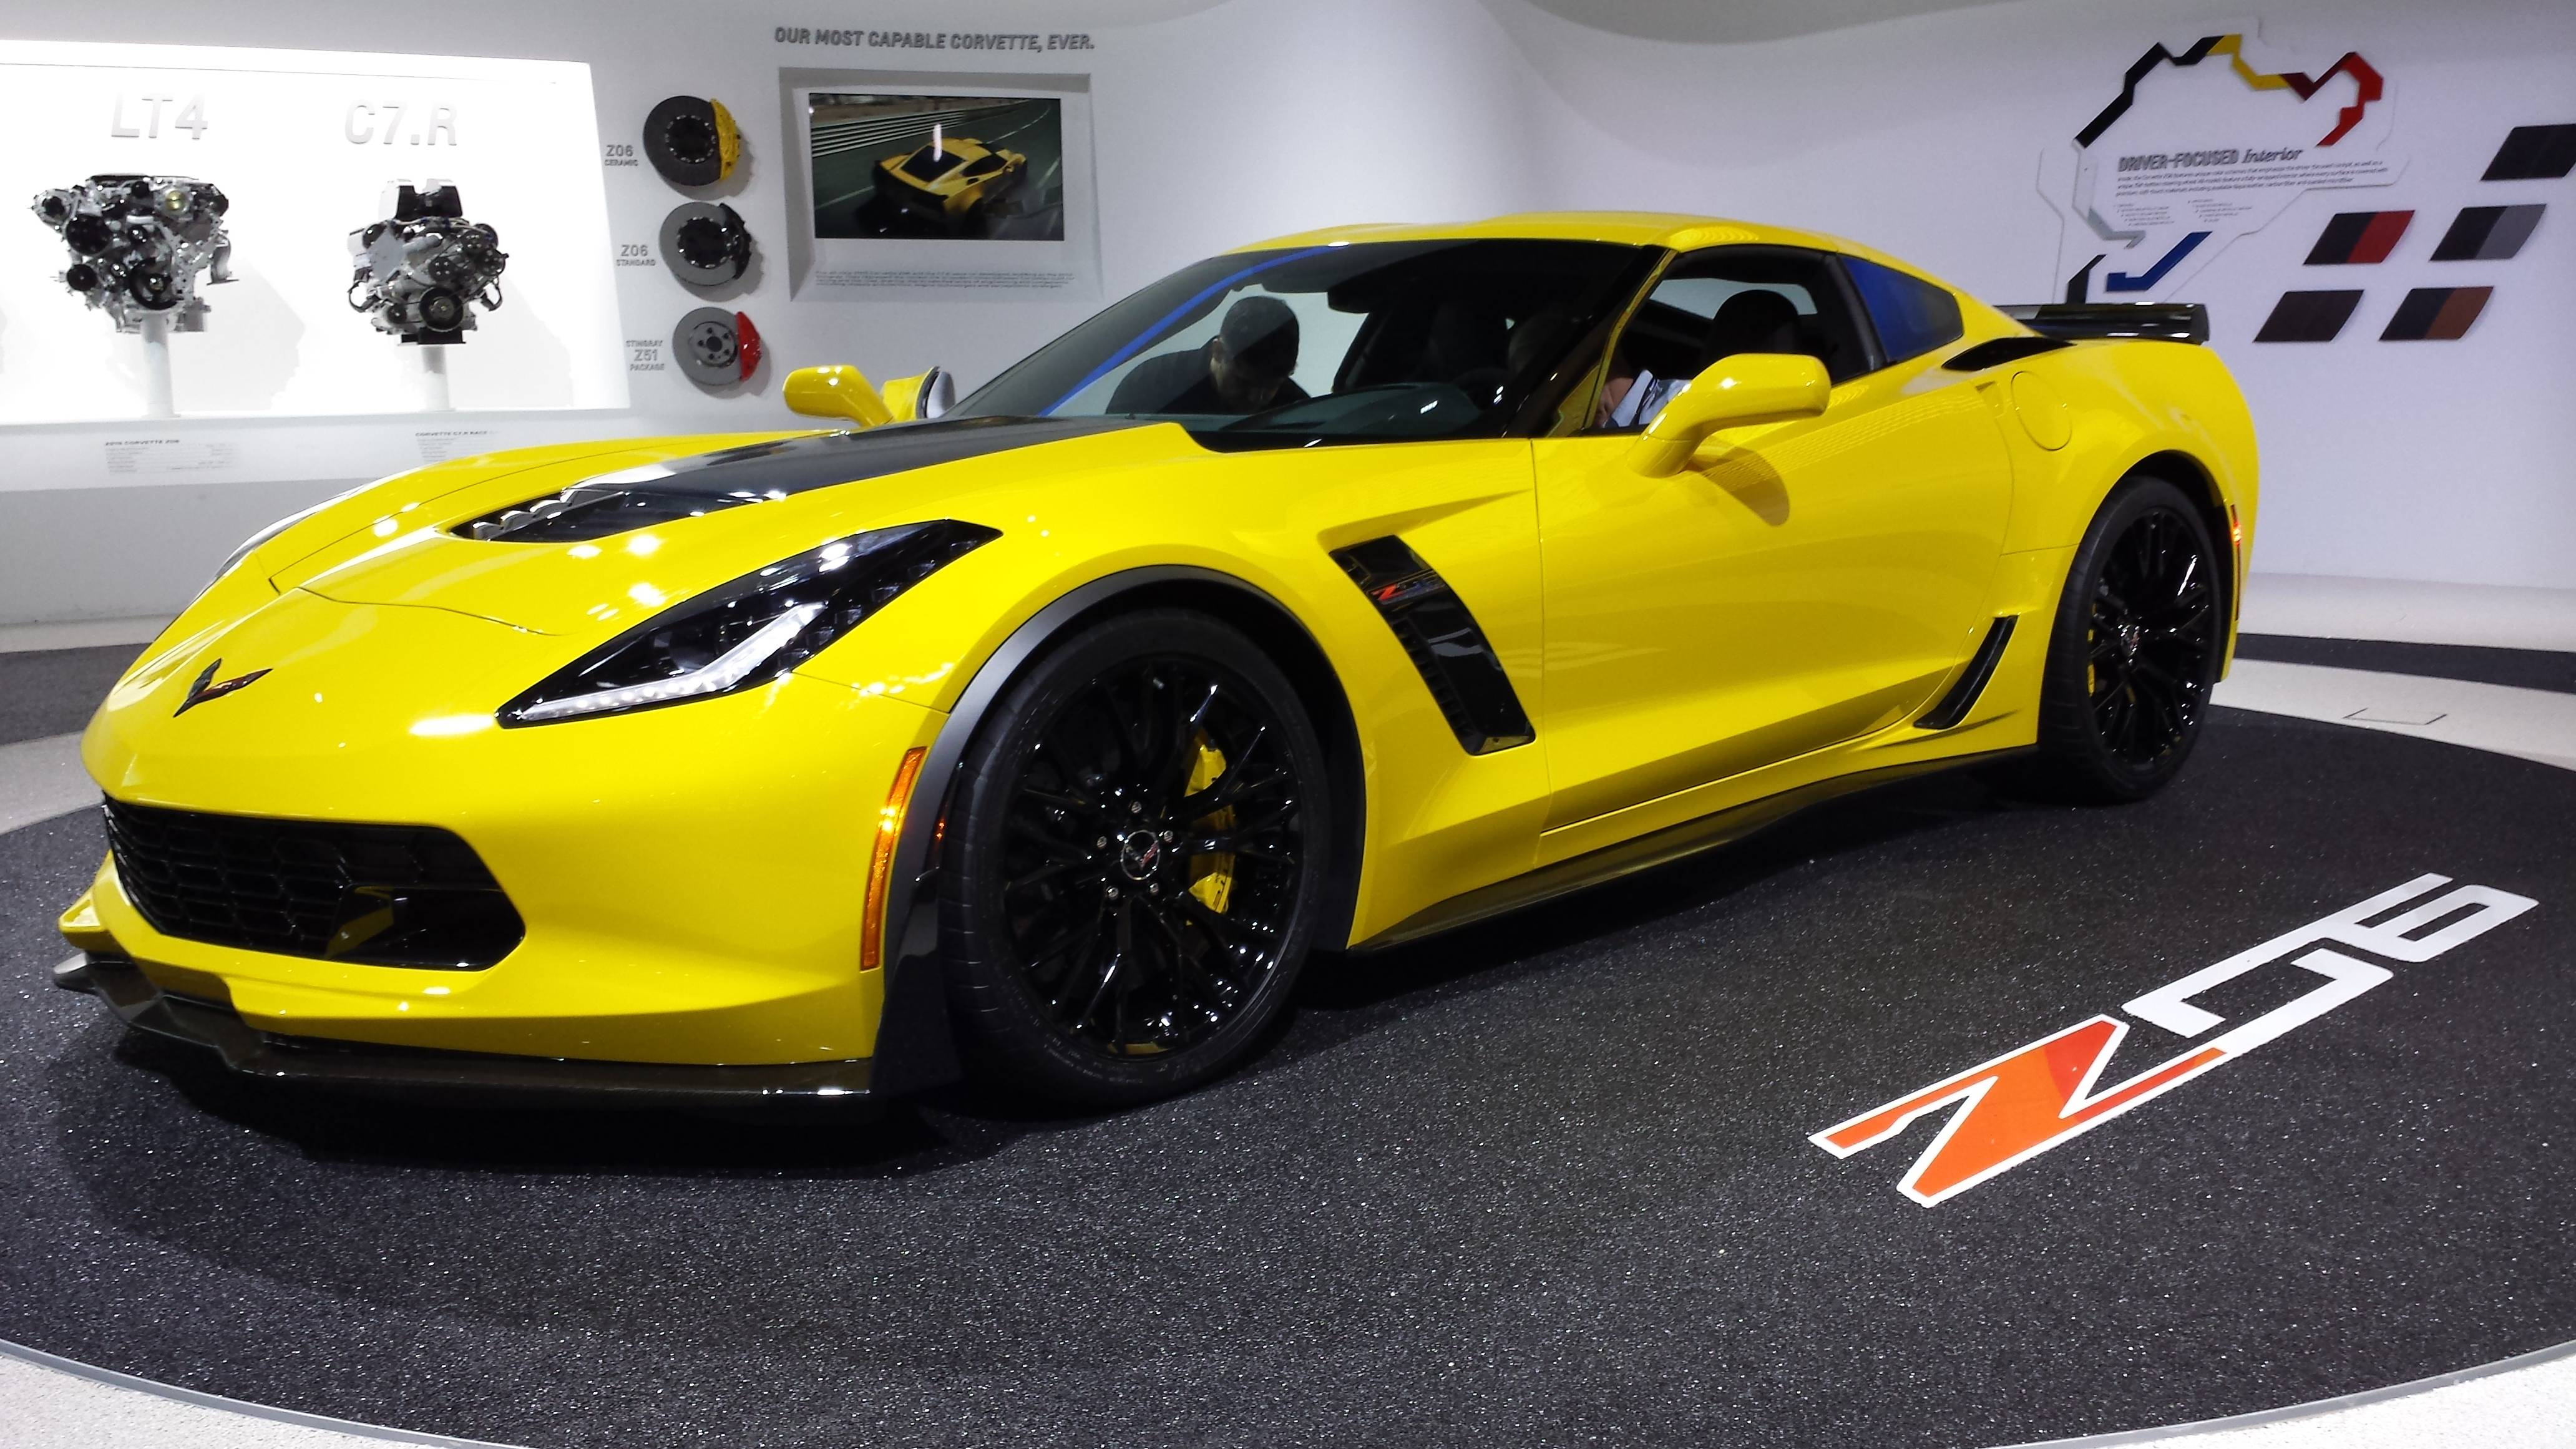 2015 z06 wallpaper - photo #10